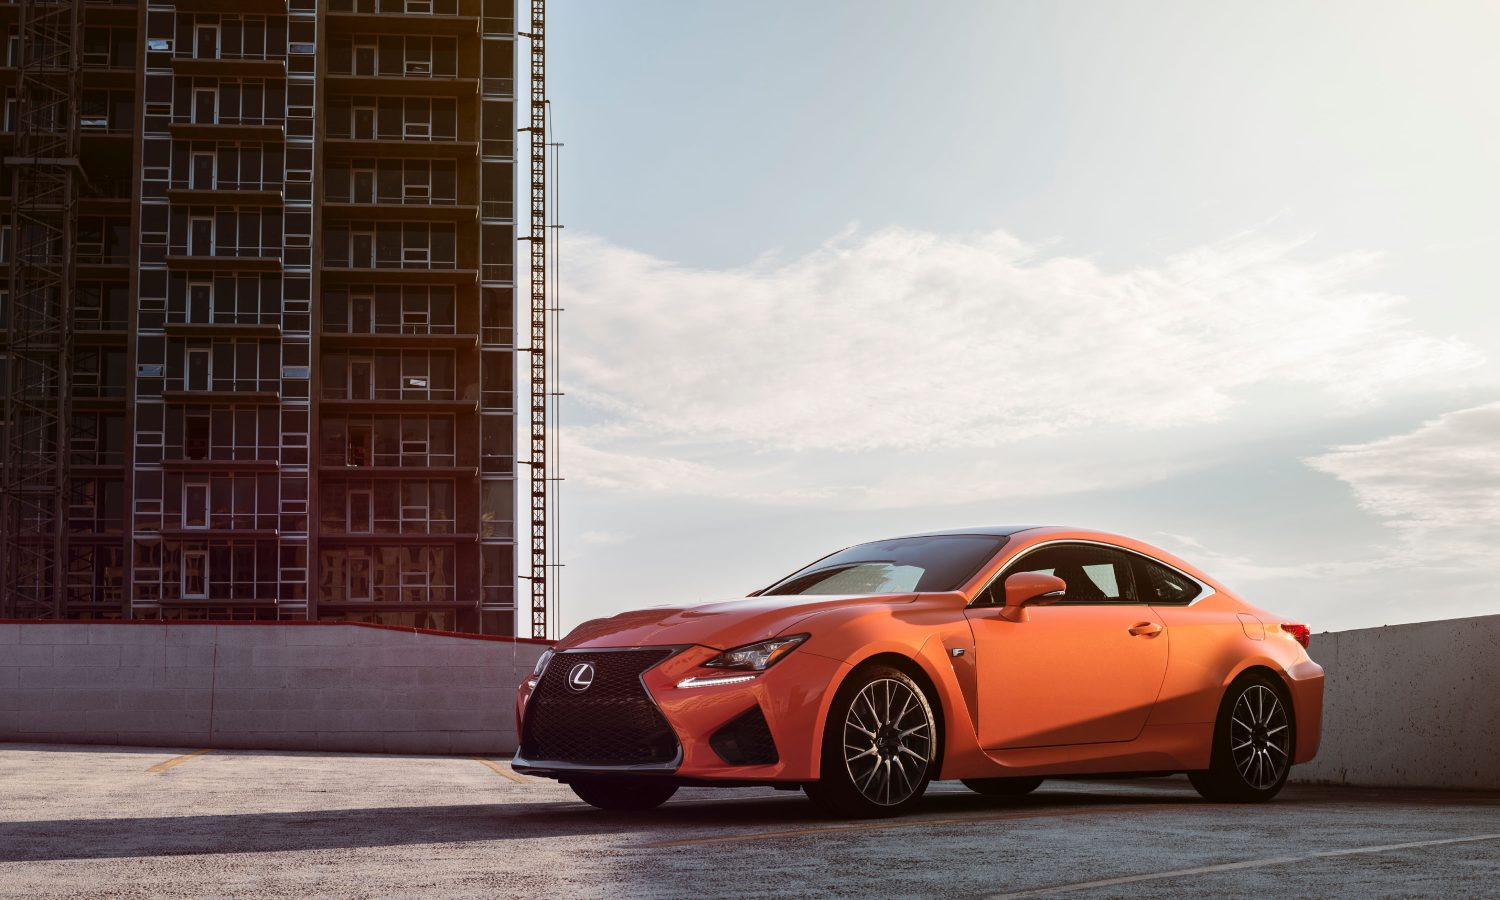 2014 North American International Auto Show (NAIAS) – Lexus RC F Reveal